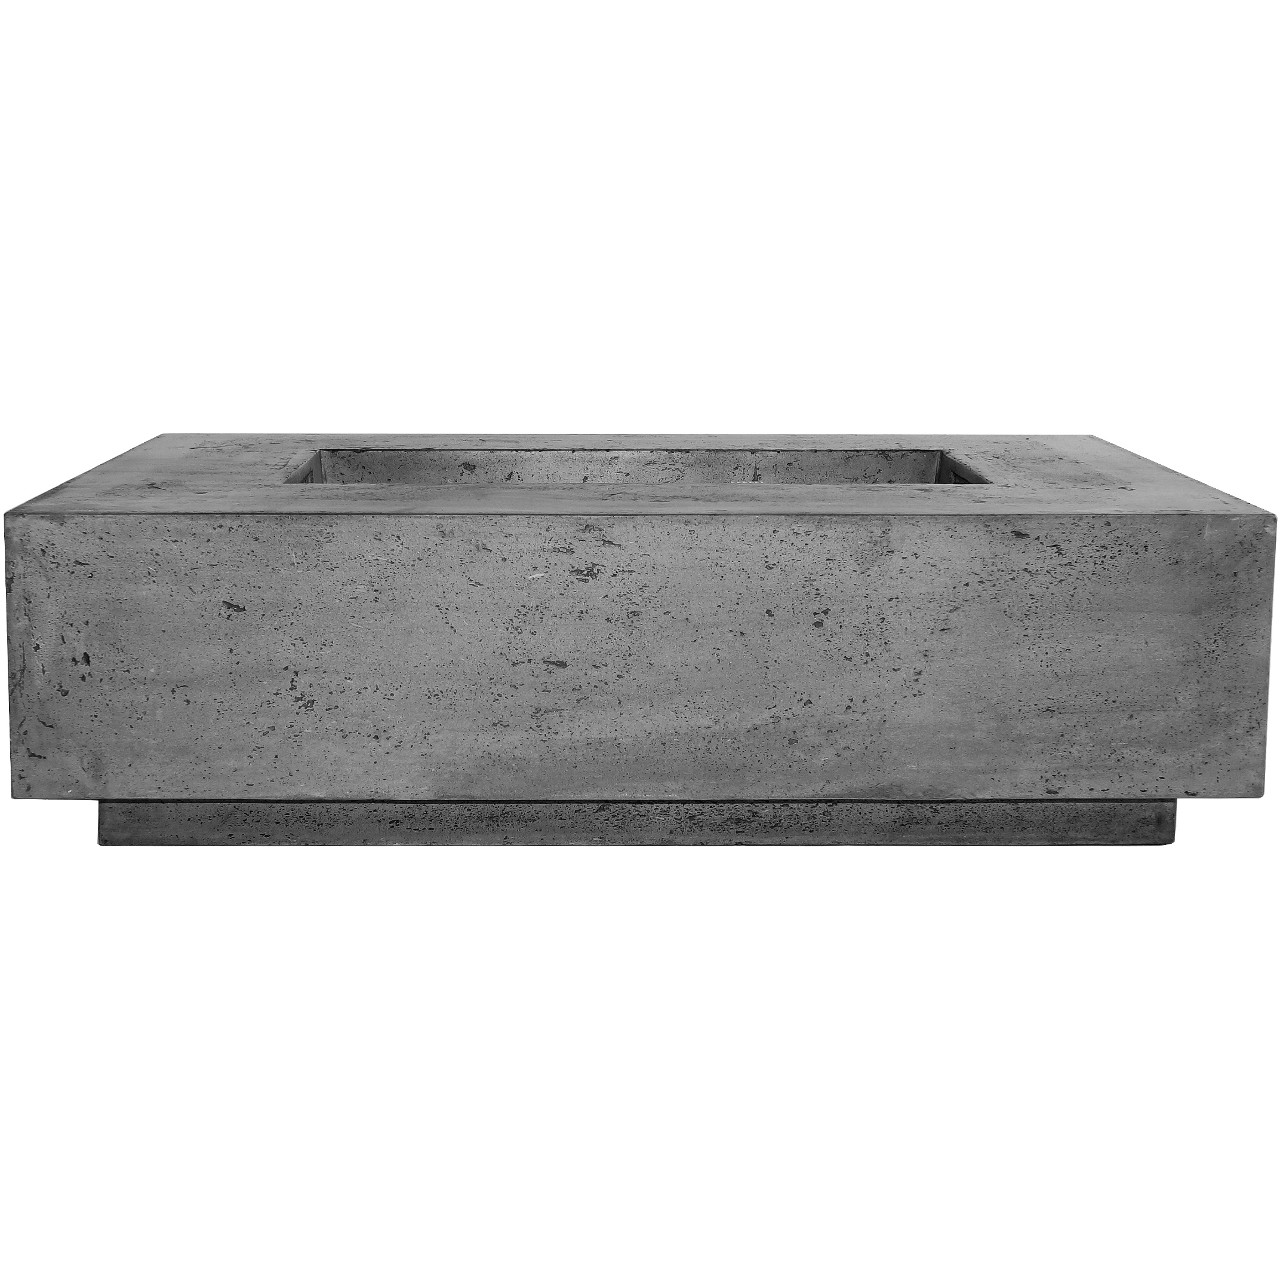 Prism Hardscapes Tavola 1 Fire Table in Pewter - LP